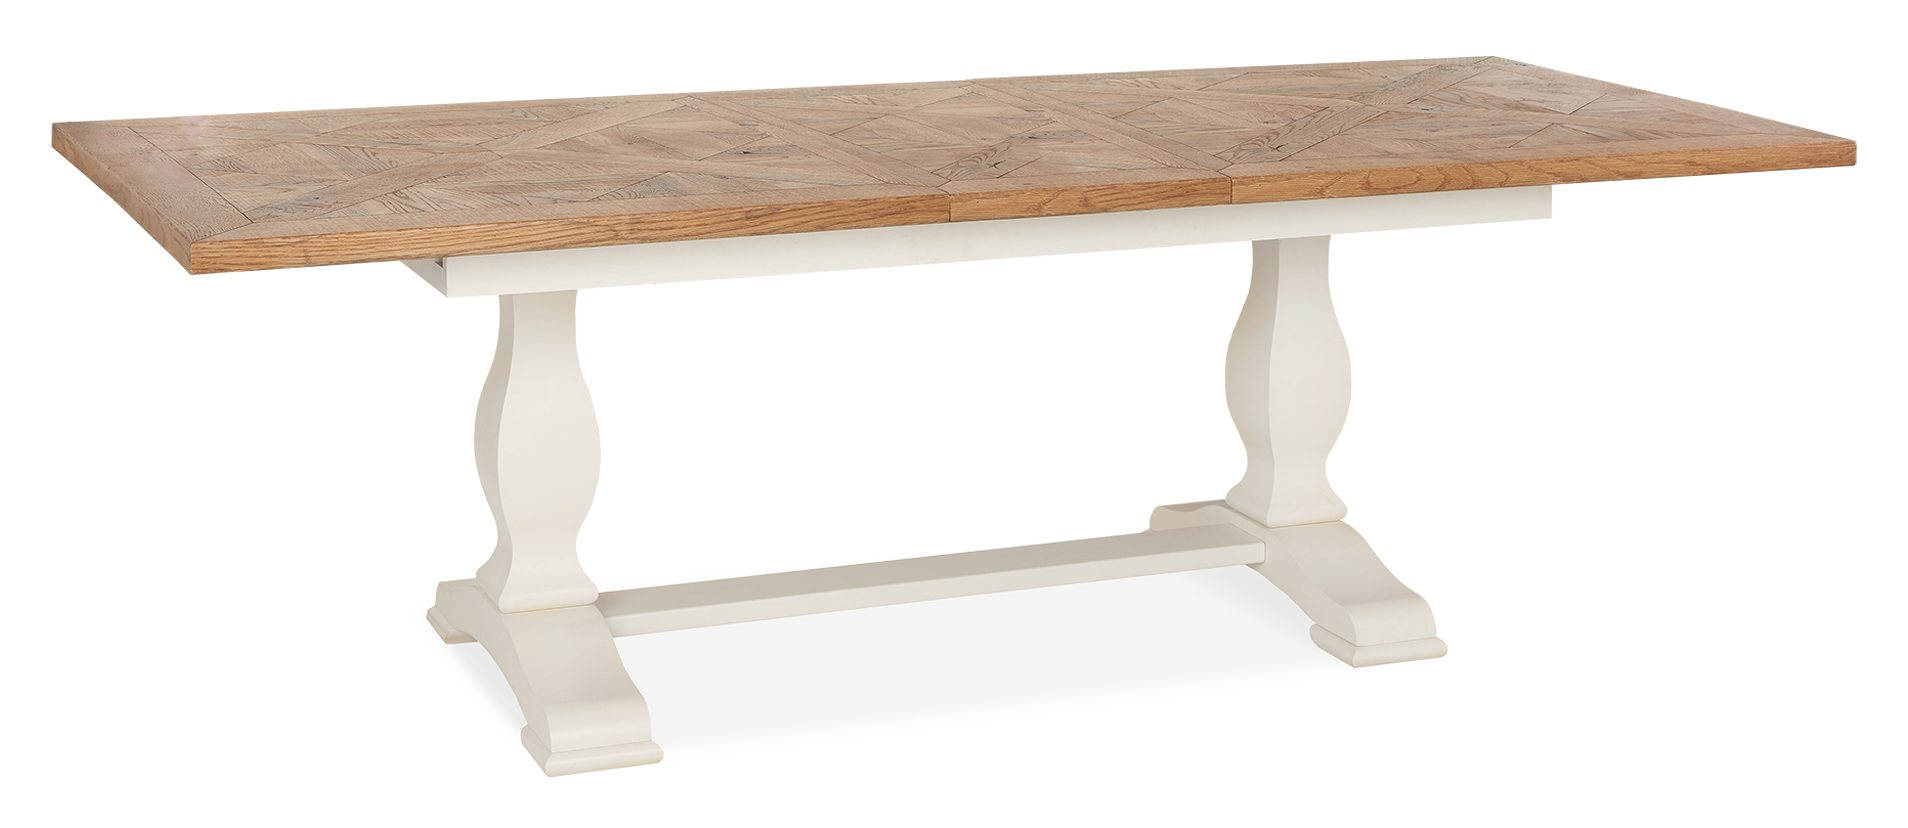 HIGHLAND DINING TABLE EXTENDED - L240cm x D100cm x H76cm